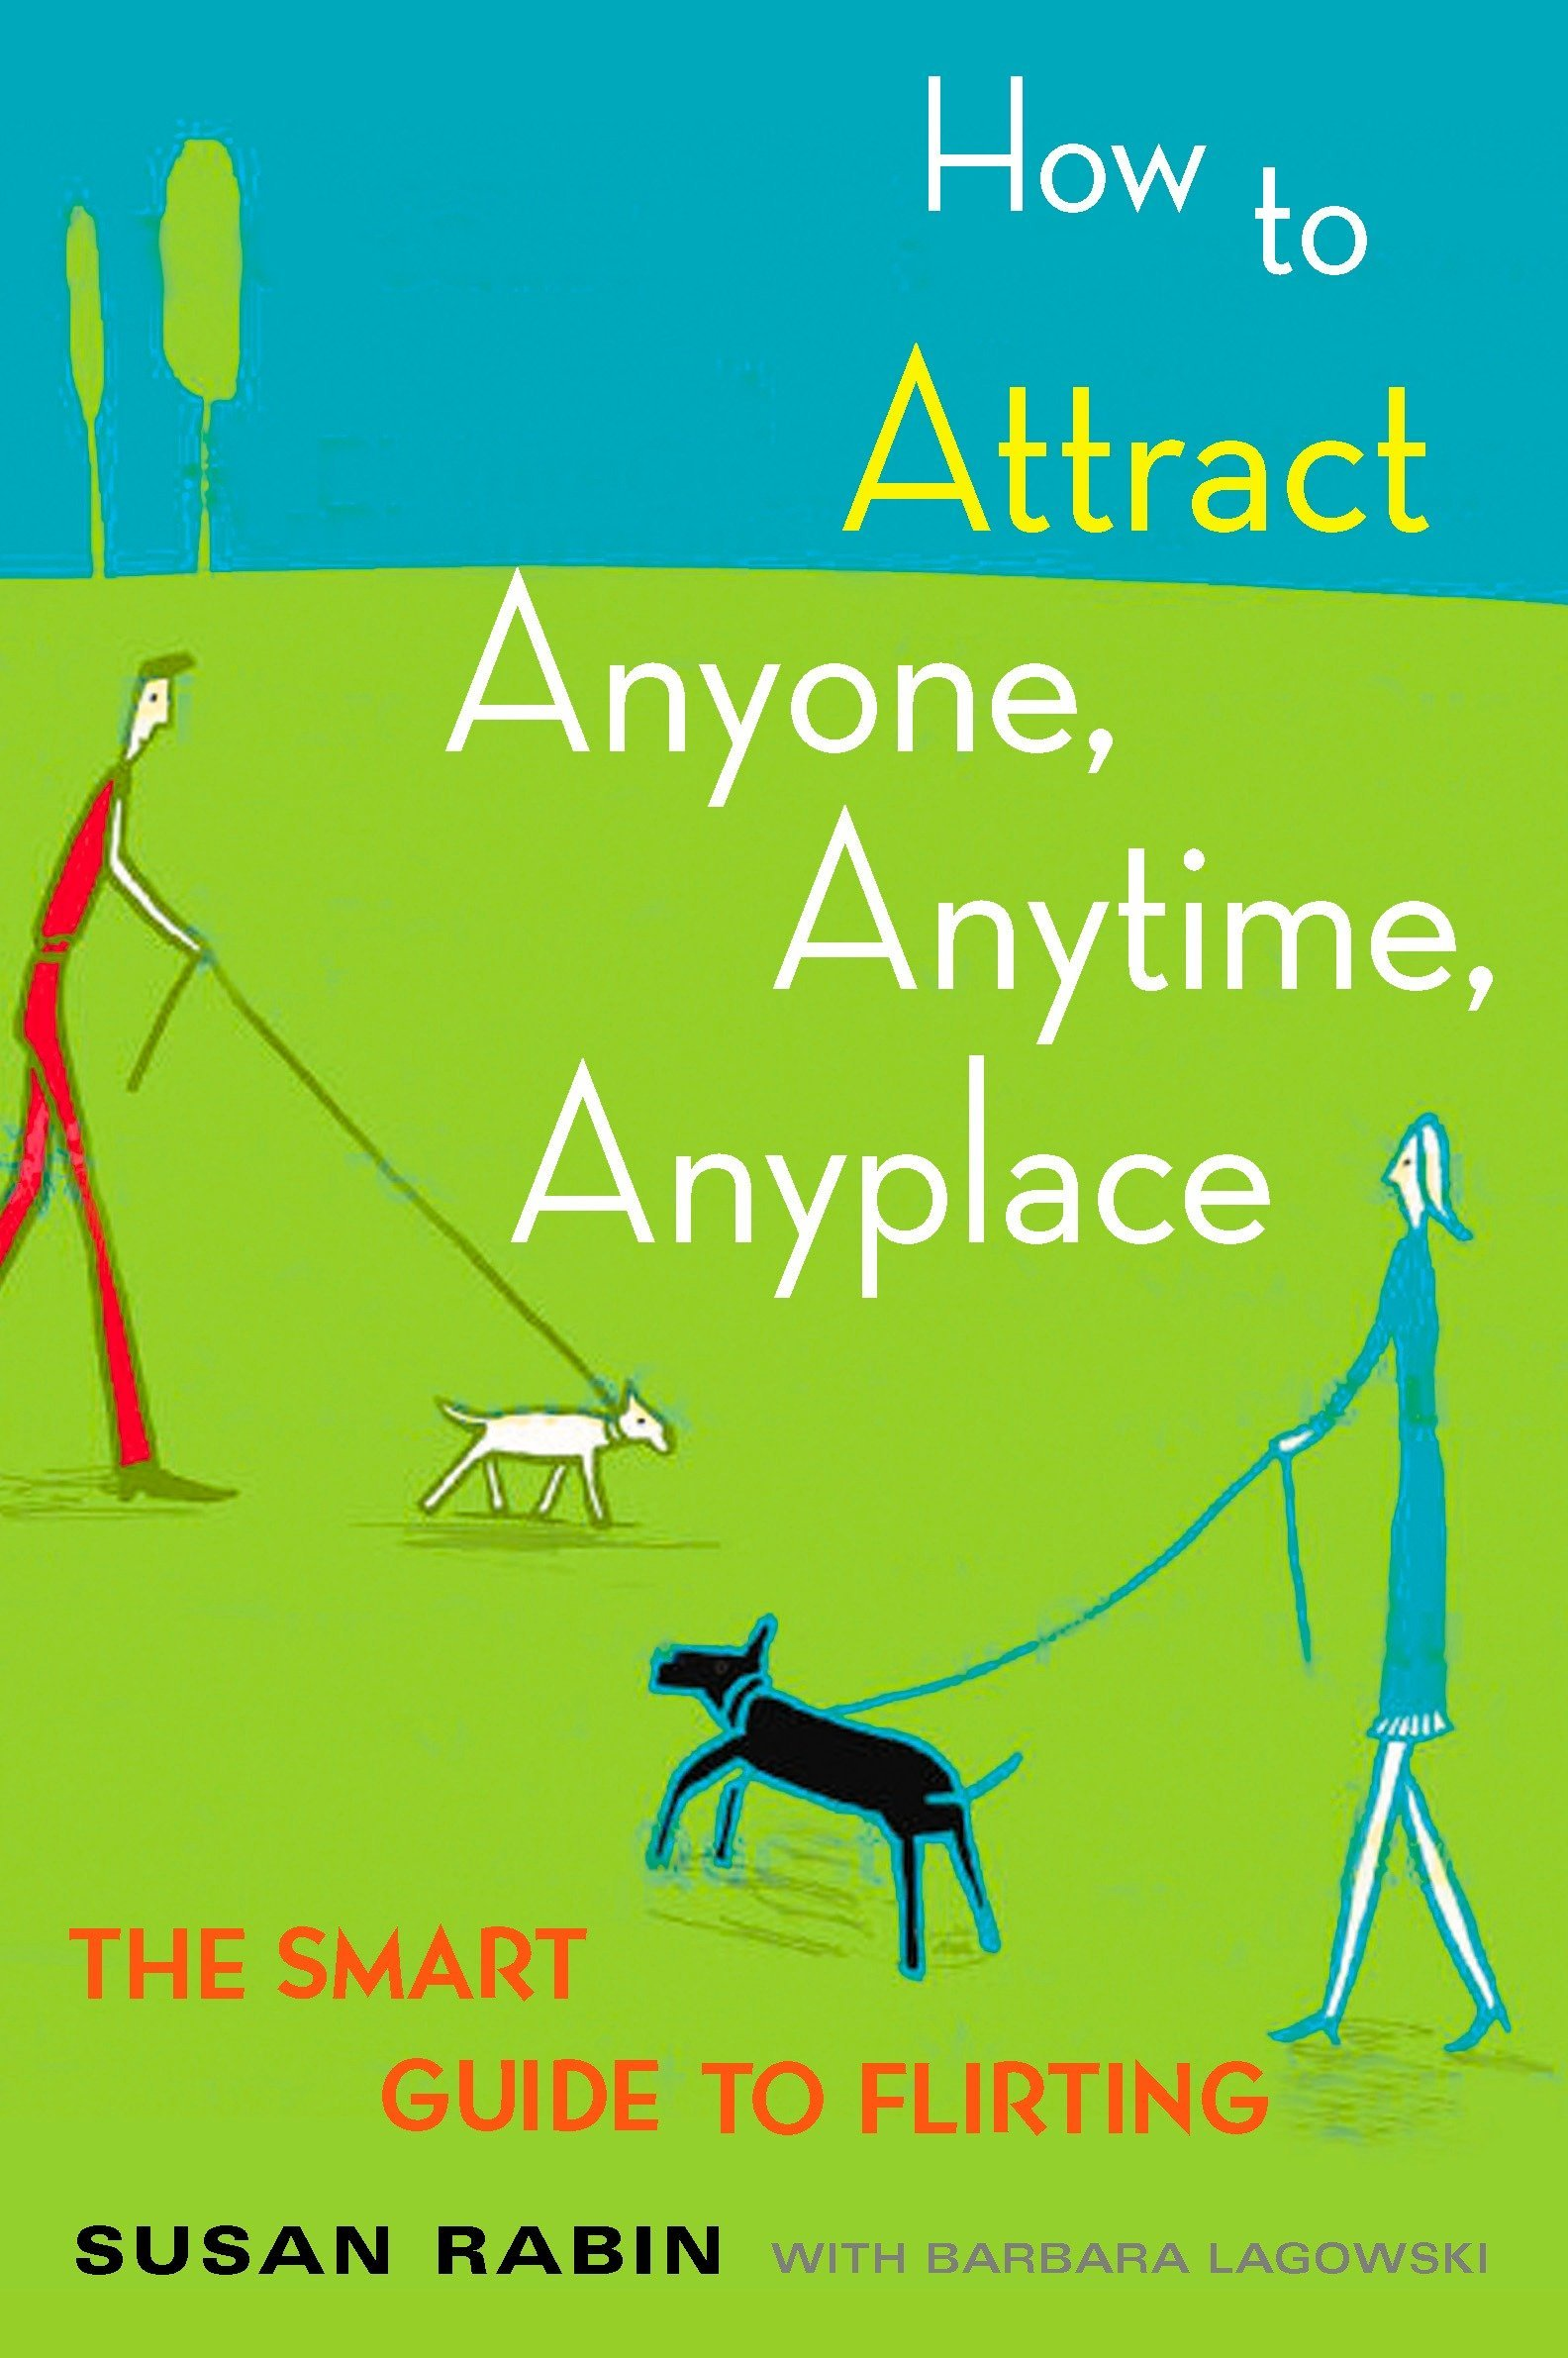 How to Attract Anyone, Anytime, Anyplace: The Smart Guide to Flirting: Susan  Rabin, Barbara Lagowski: 9780452270862: Amazon.com: Books